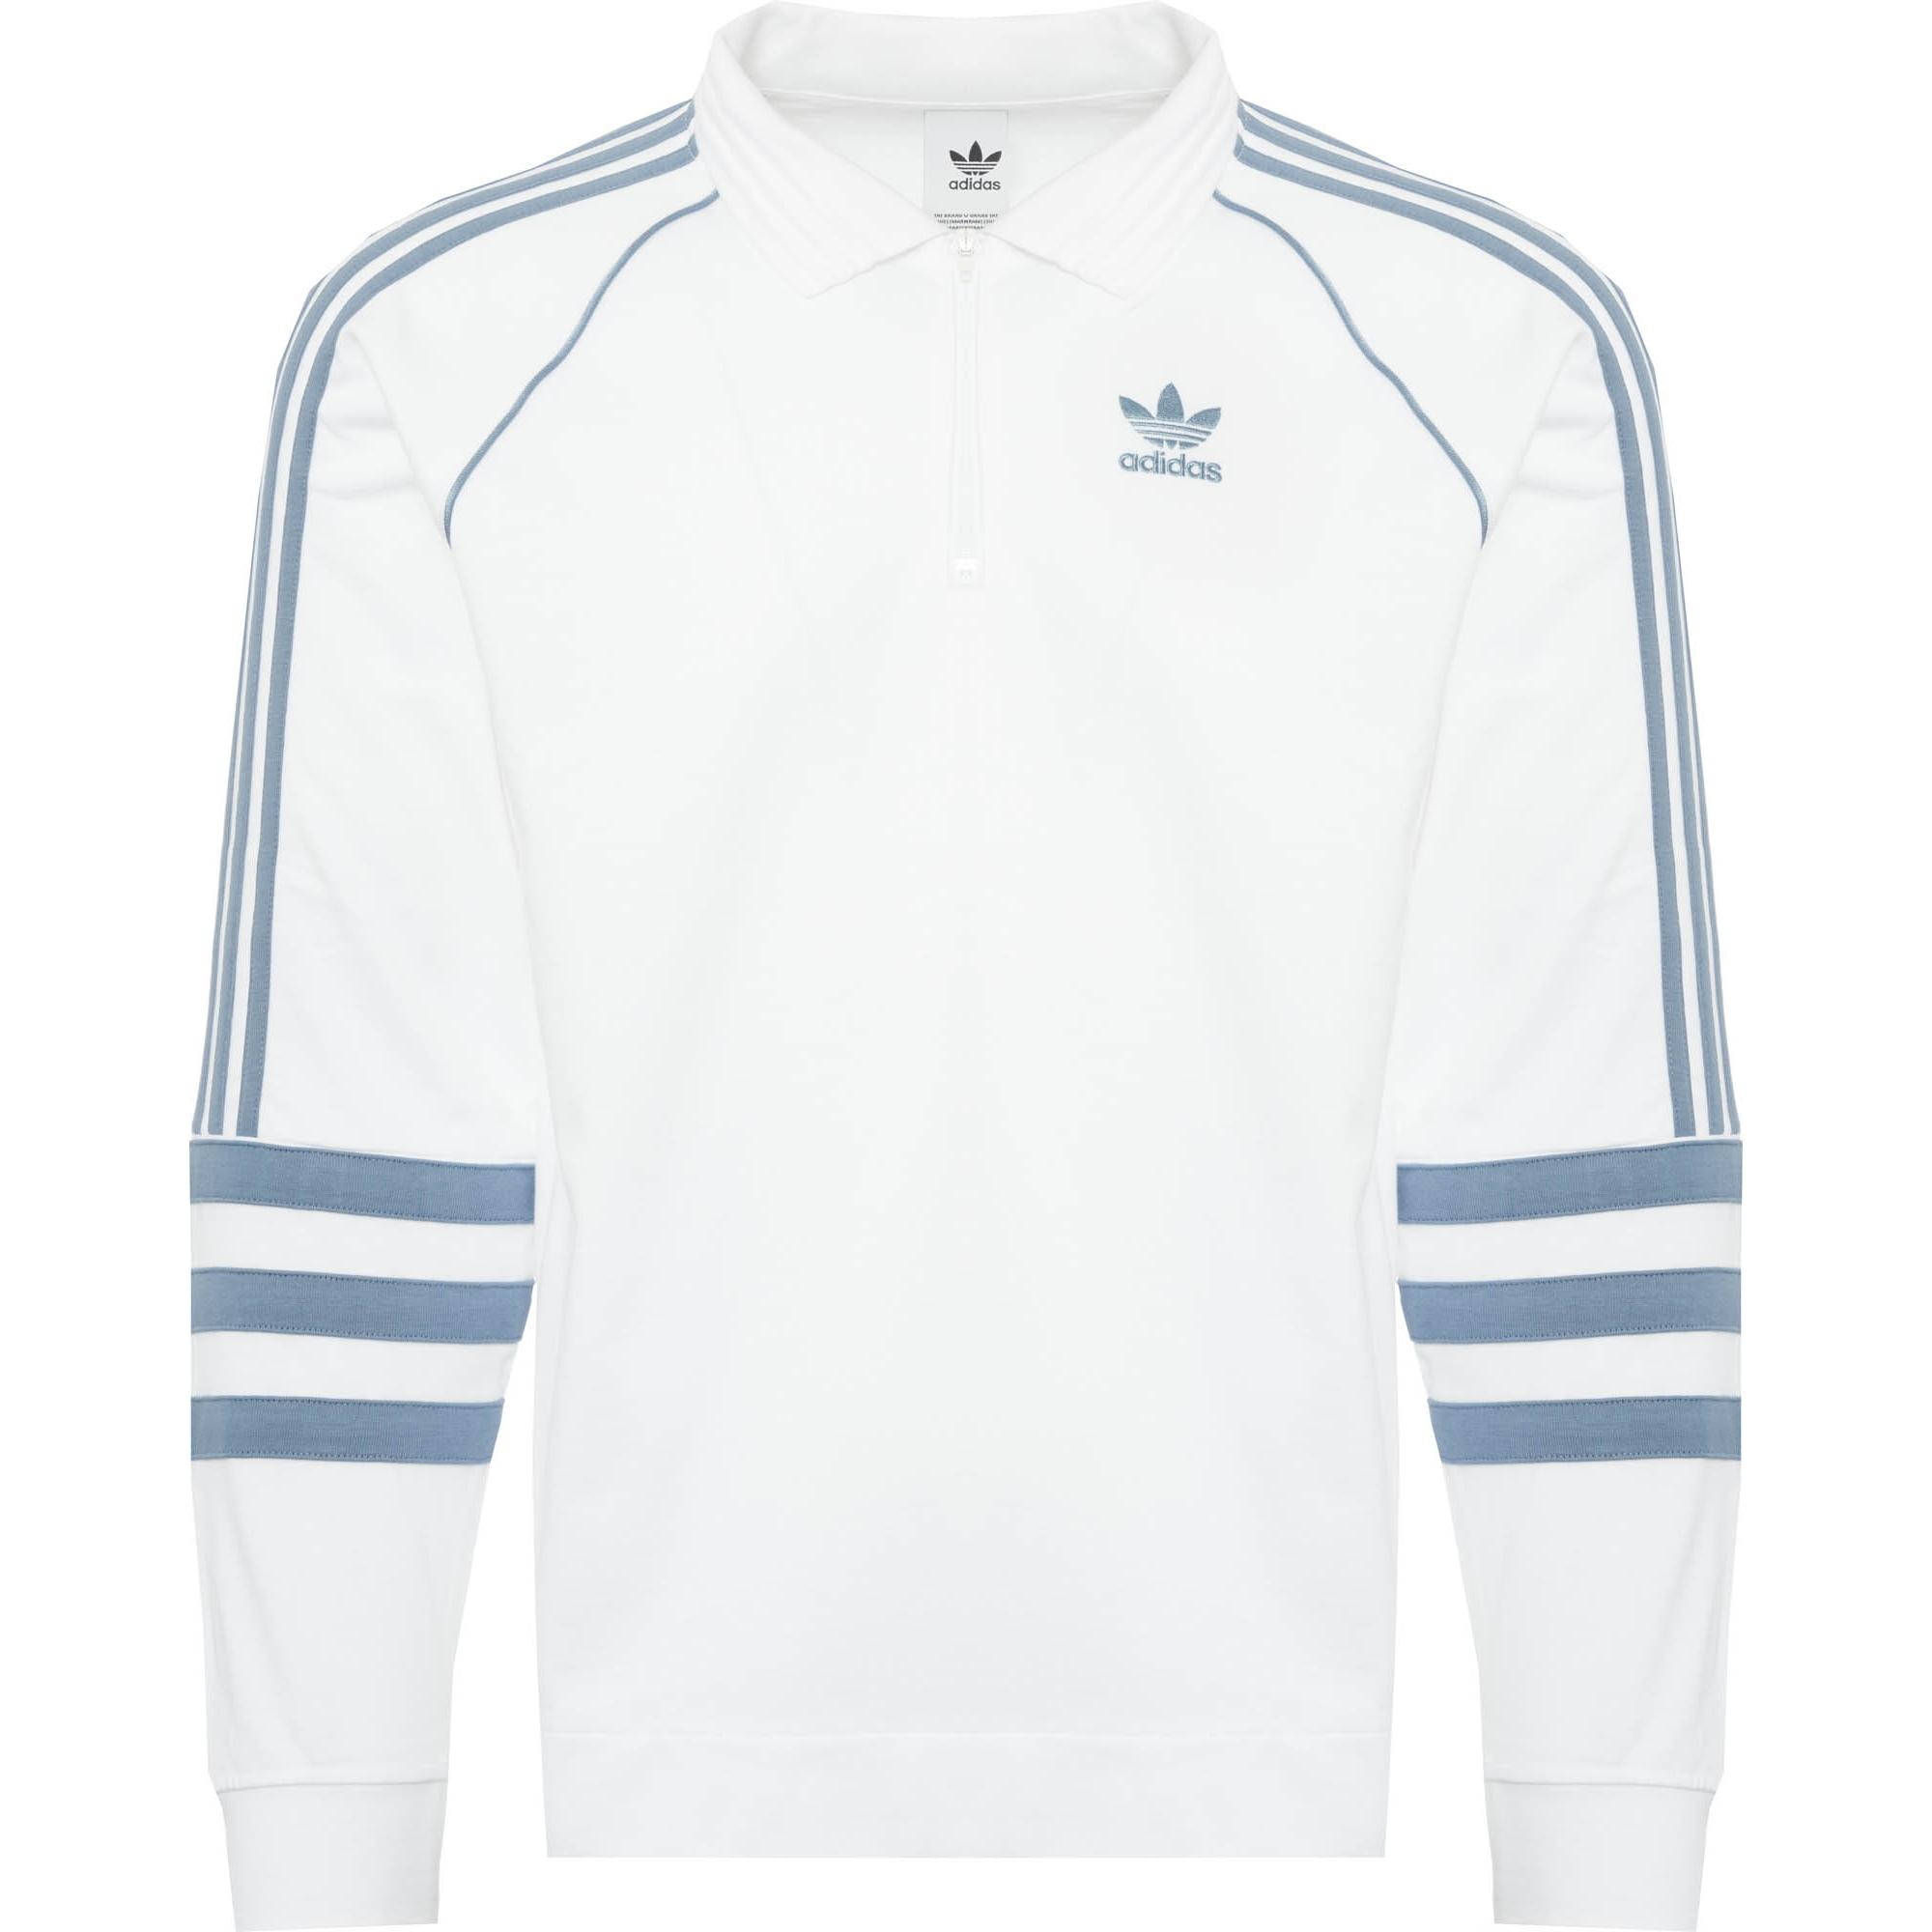 f332aef7b79 Adidas Originals Authentic Rugby Jersey in Blue for Men - Lyst